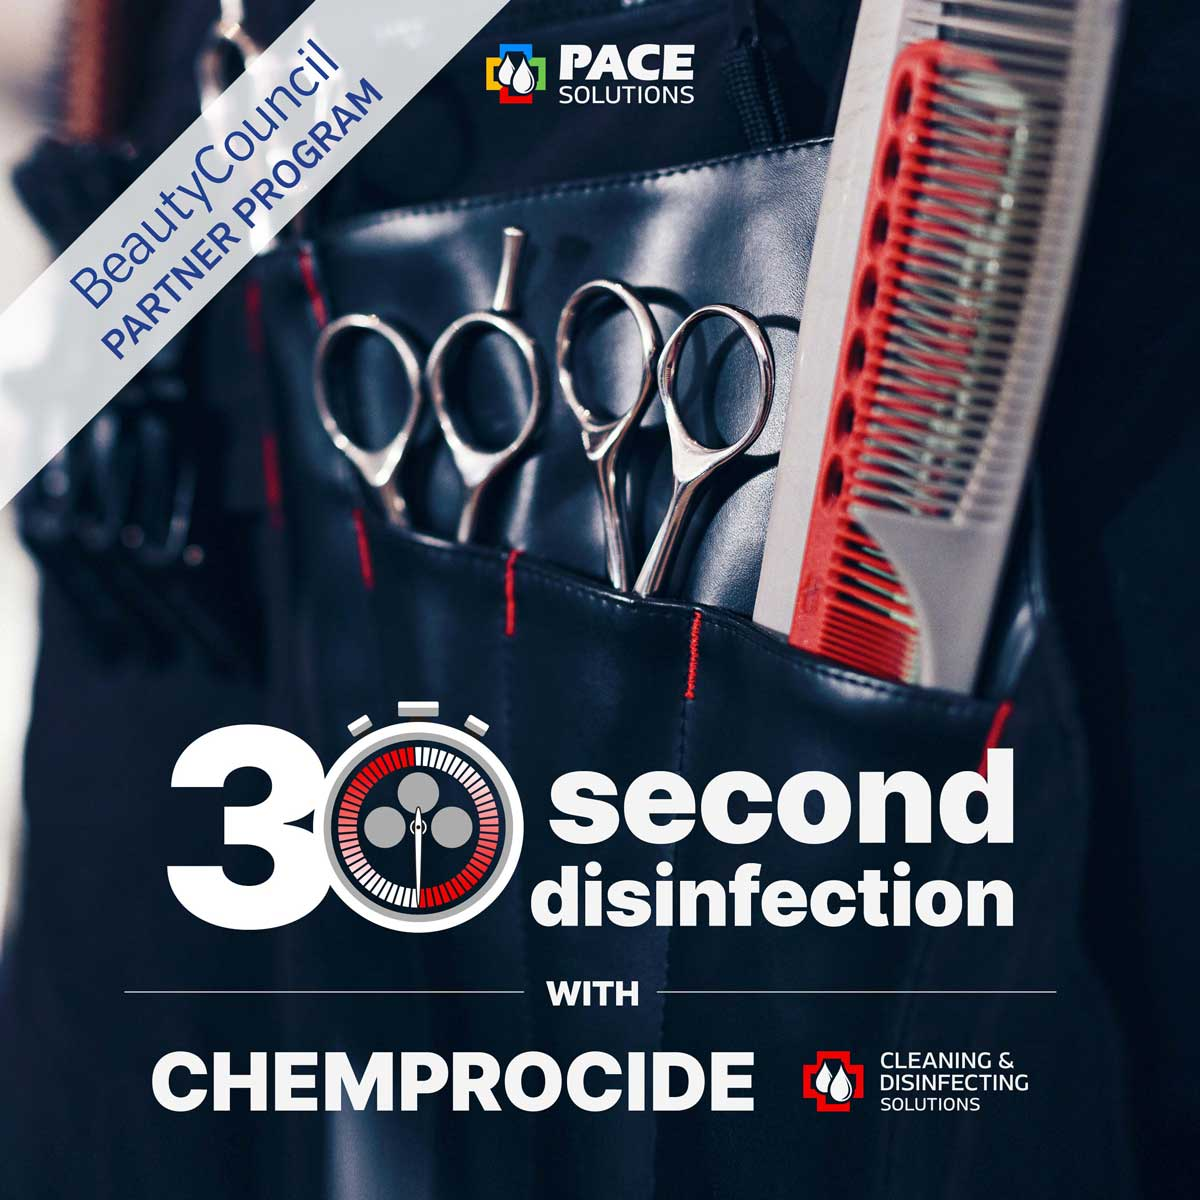 The Economical Disinfection Solution from Shears to Counters